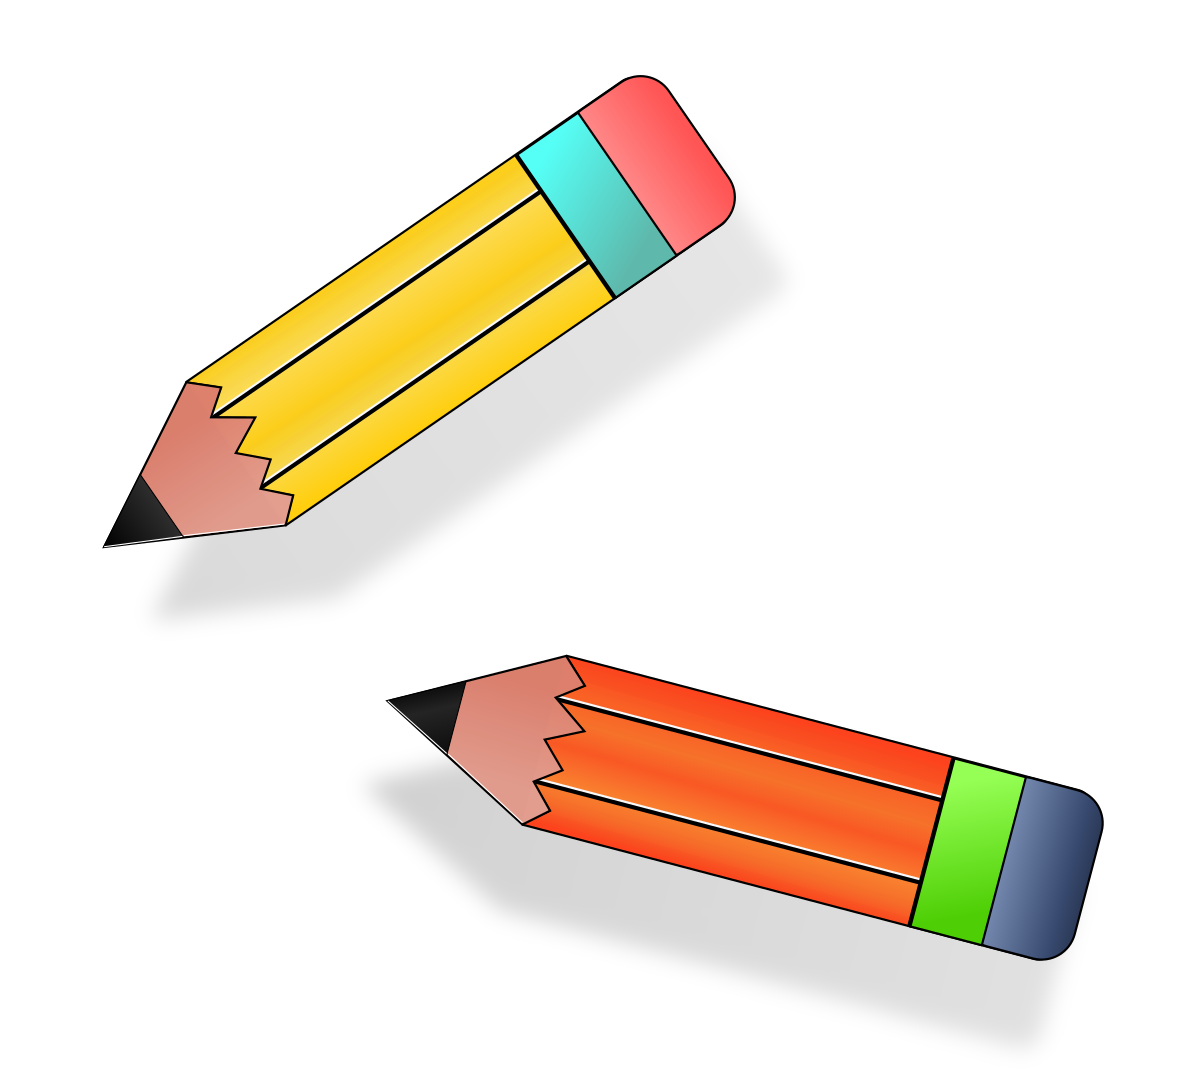 Pencil free to use clipart 3 - Cliparting.com png